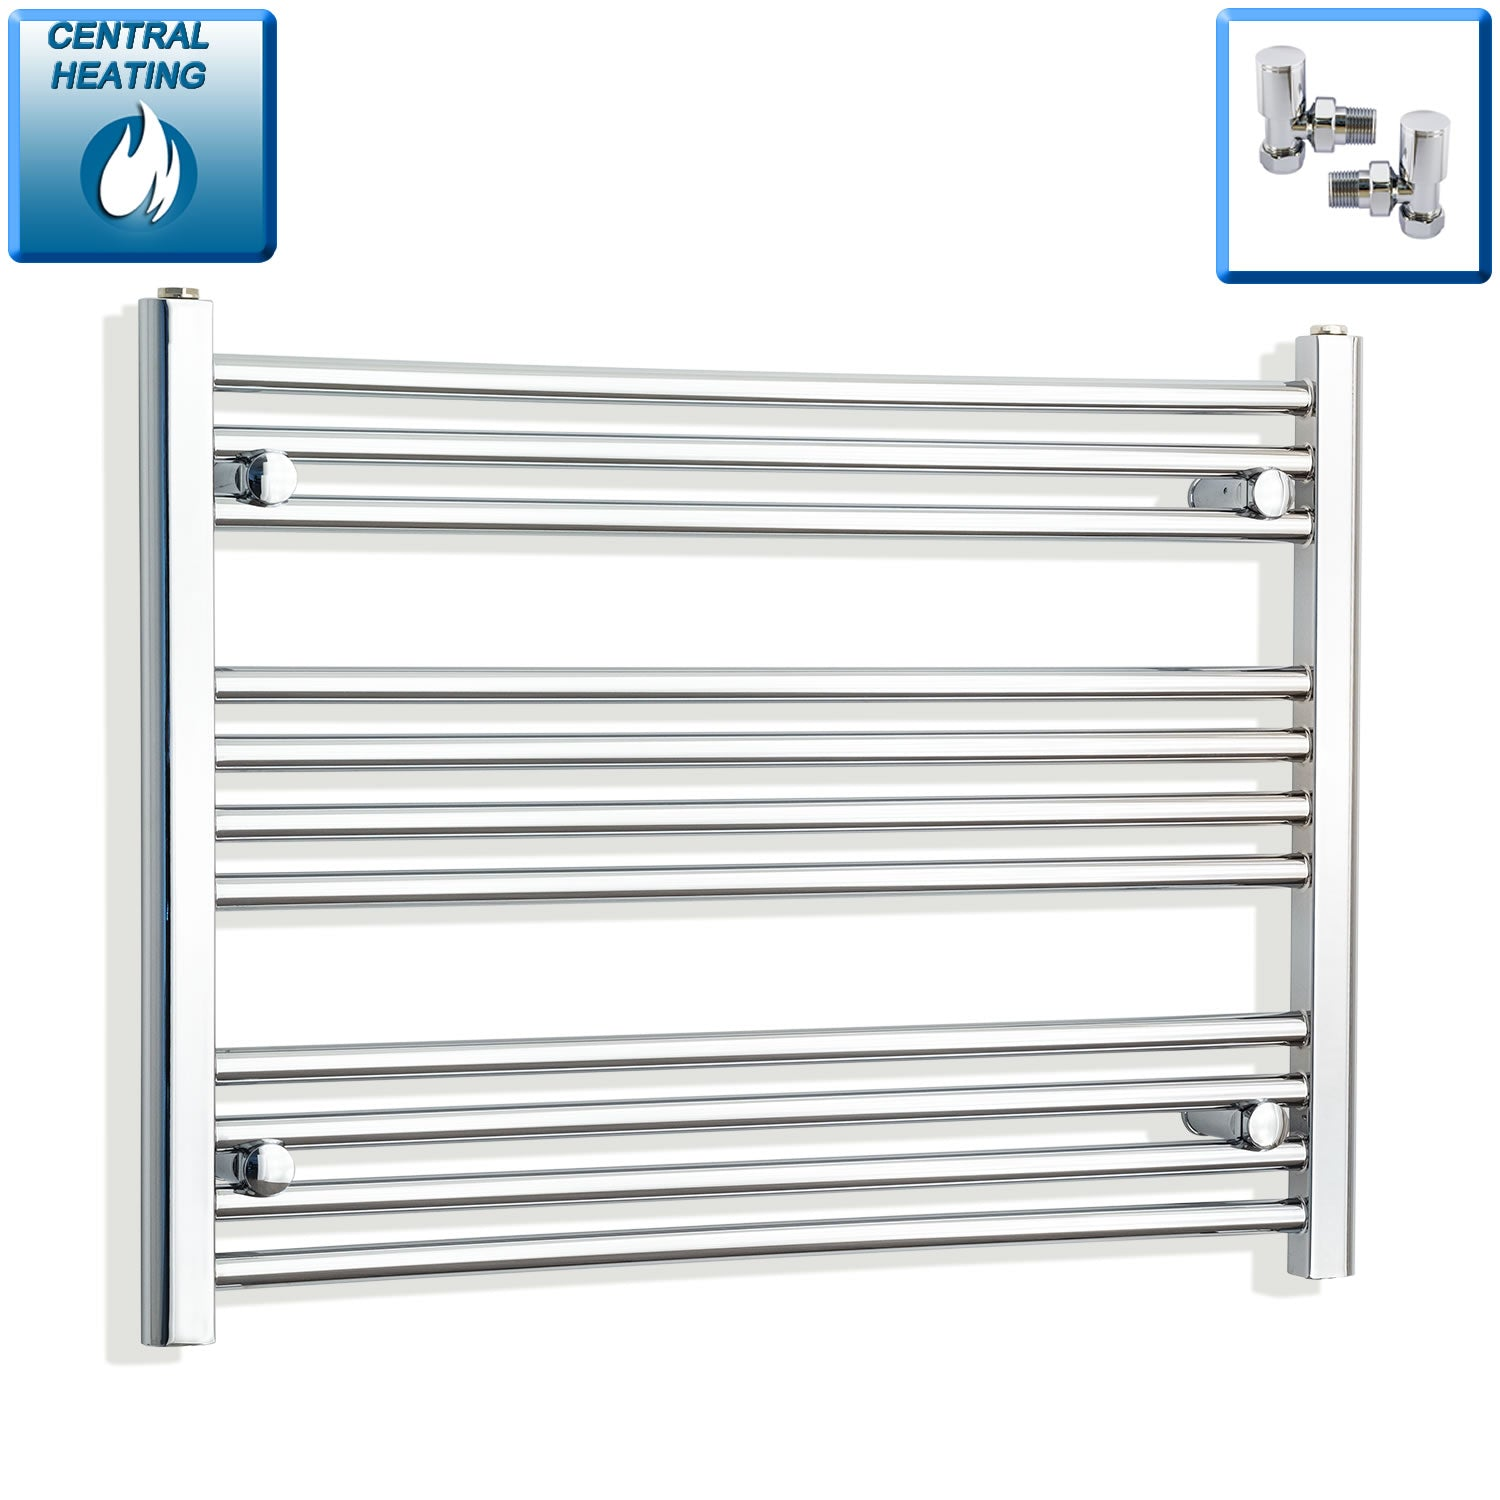 700mm Wide 600mm High Chrome Towel Rail Radiator With Angled Valve